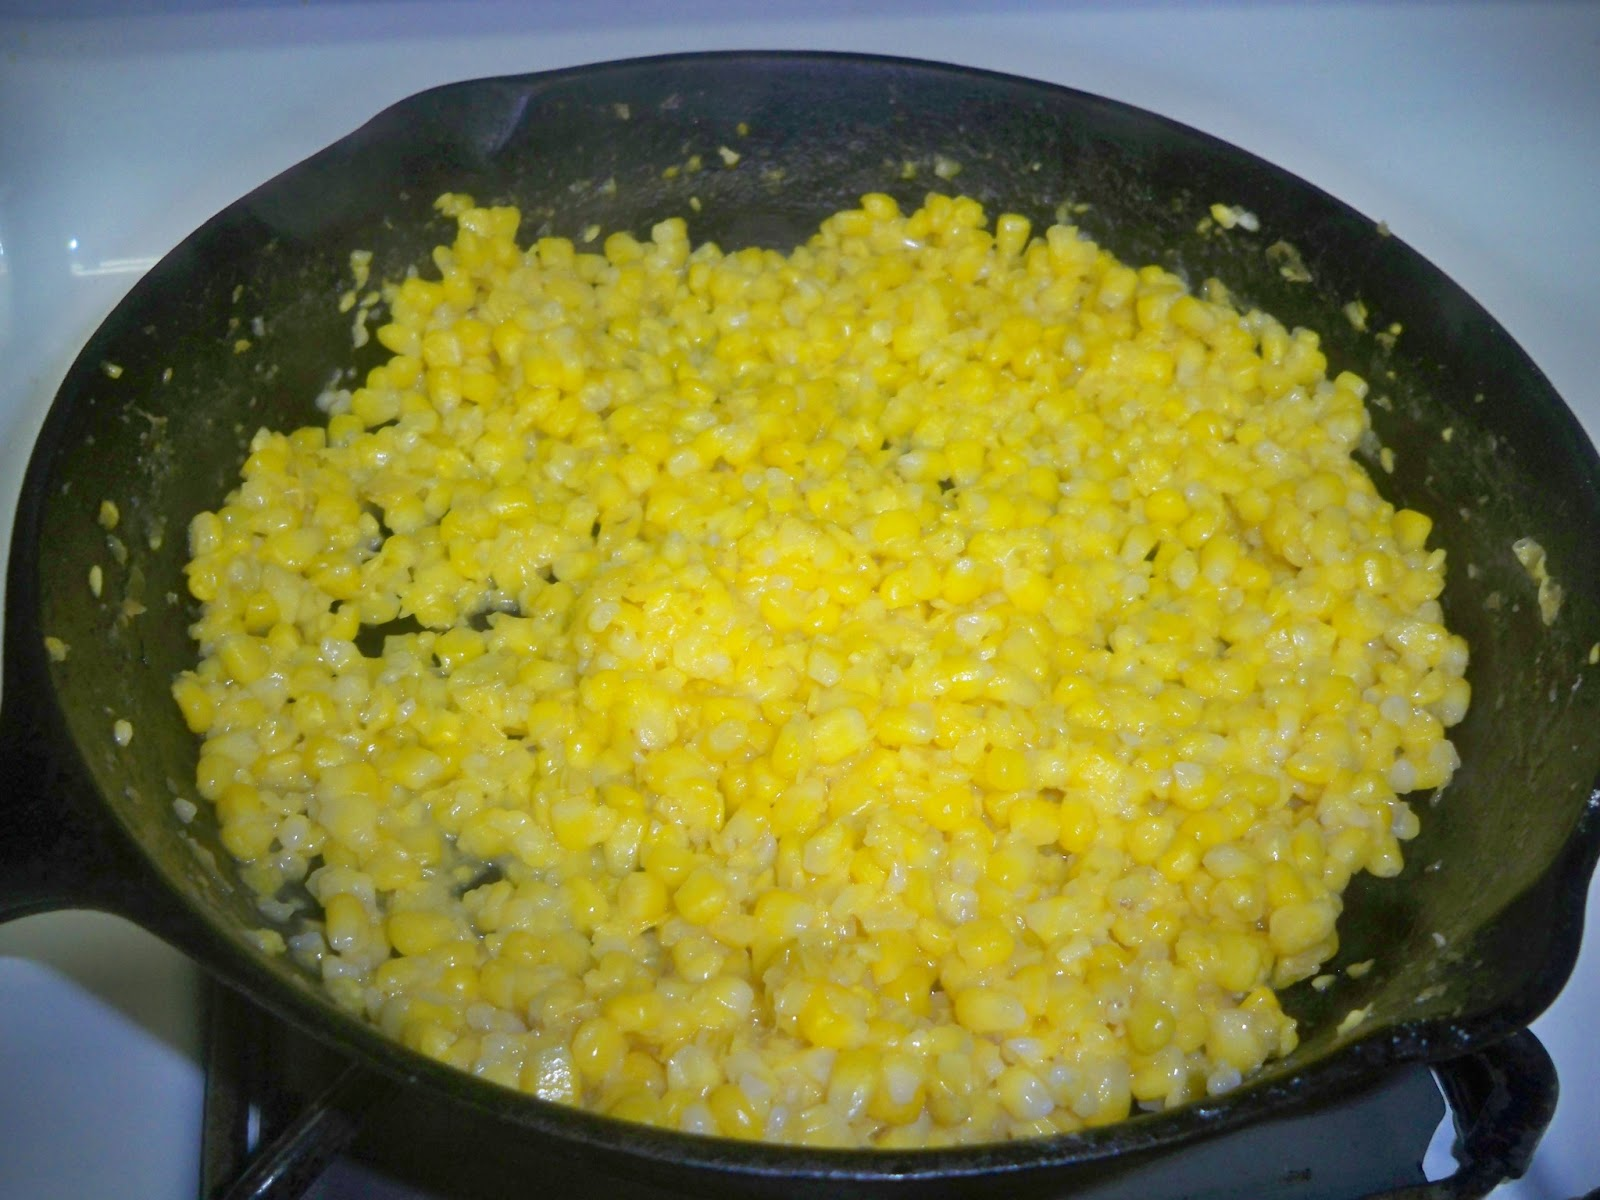 Gramma's in the kitchen: Skillet Fried Sweet Corn